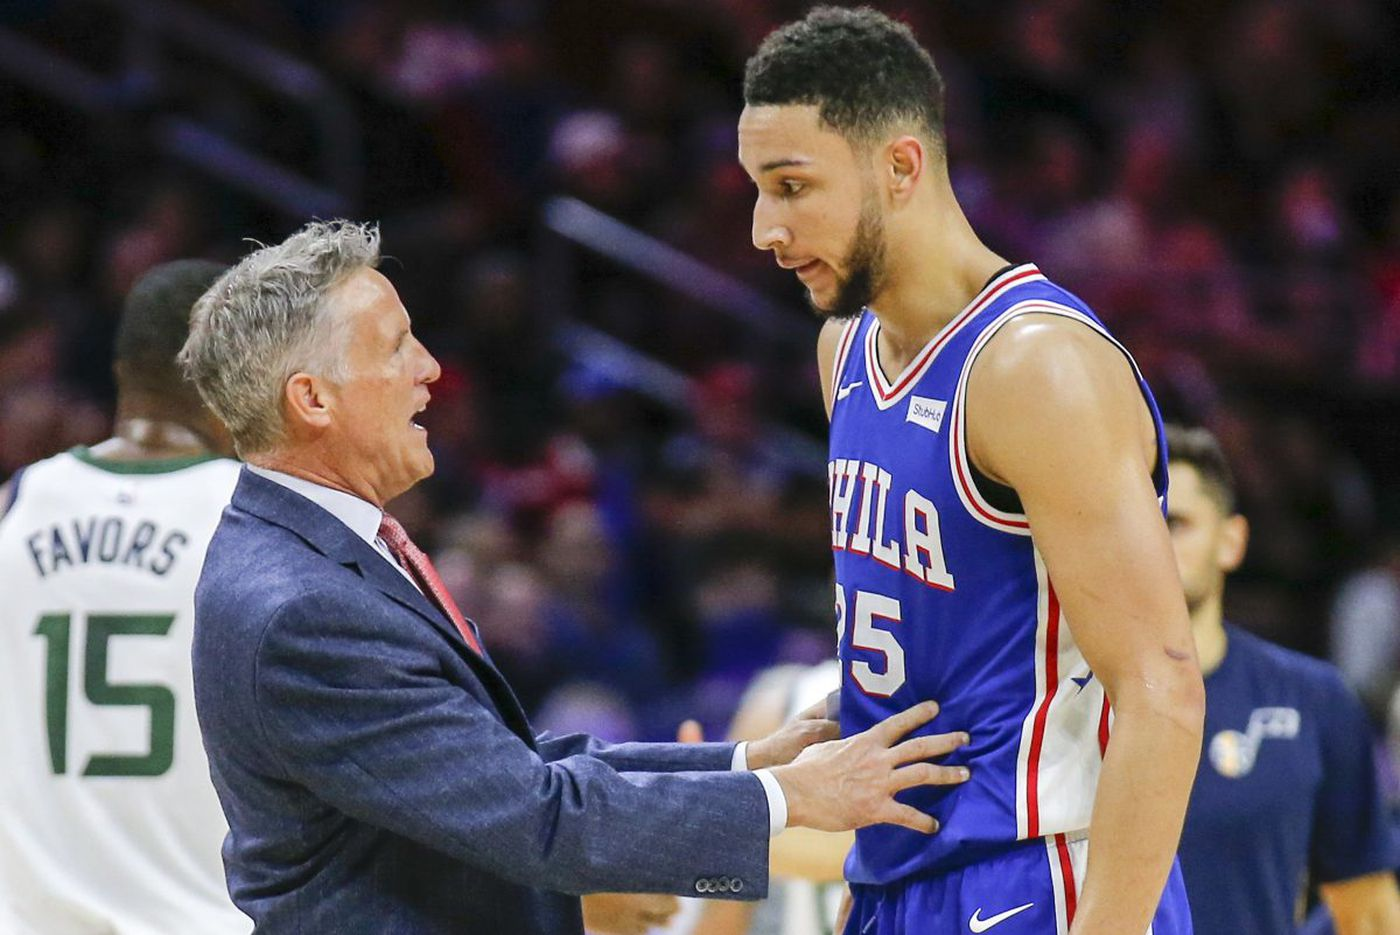 Sixers' Brett Brown stands by statement about youth causing turnovers